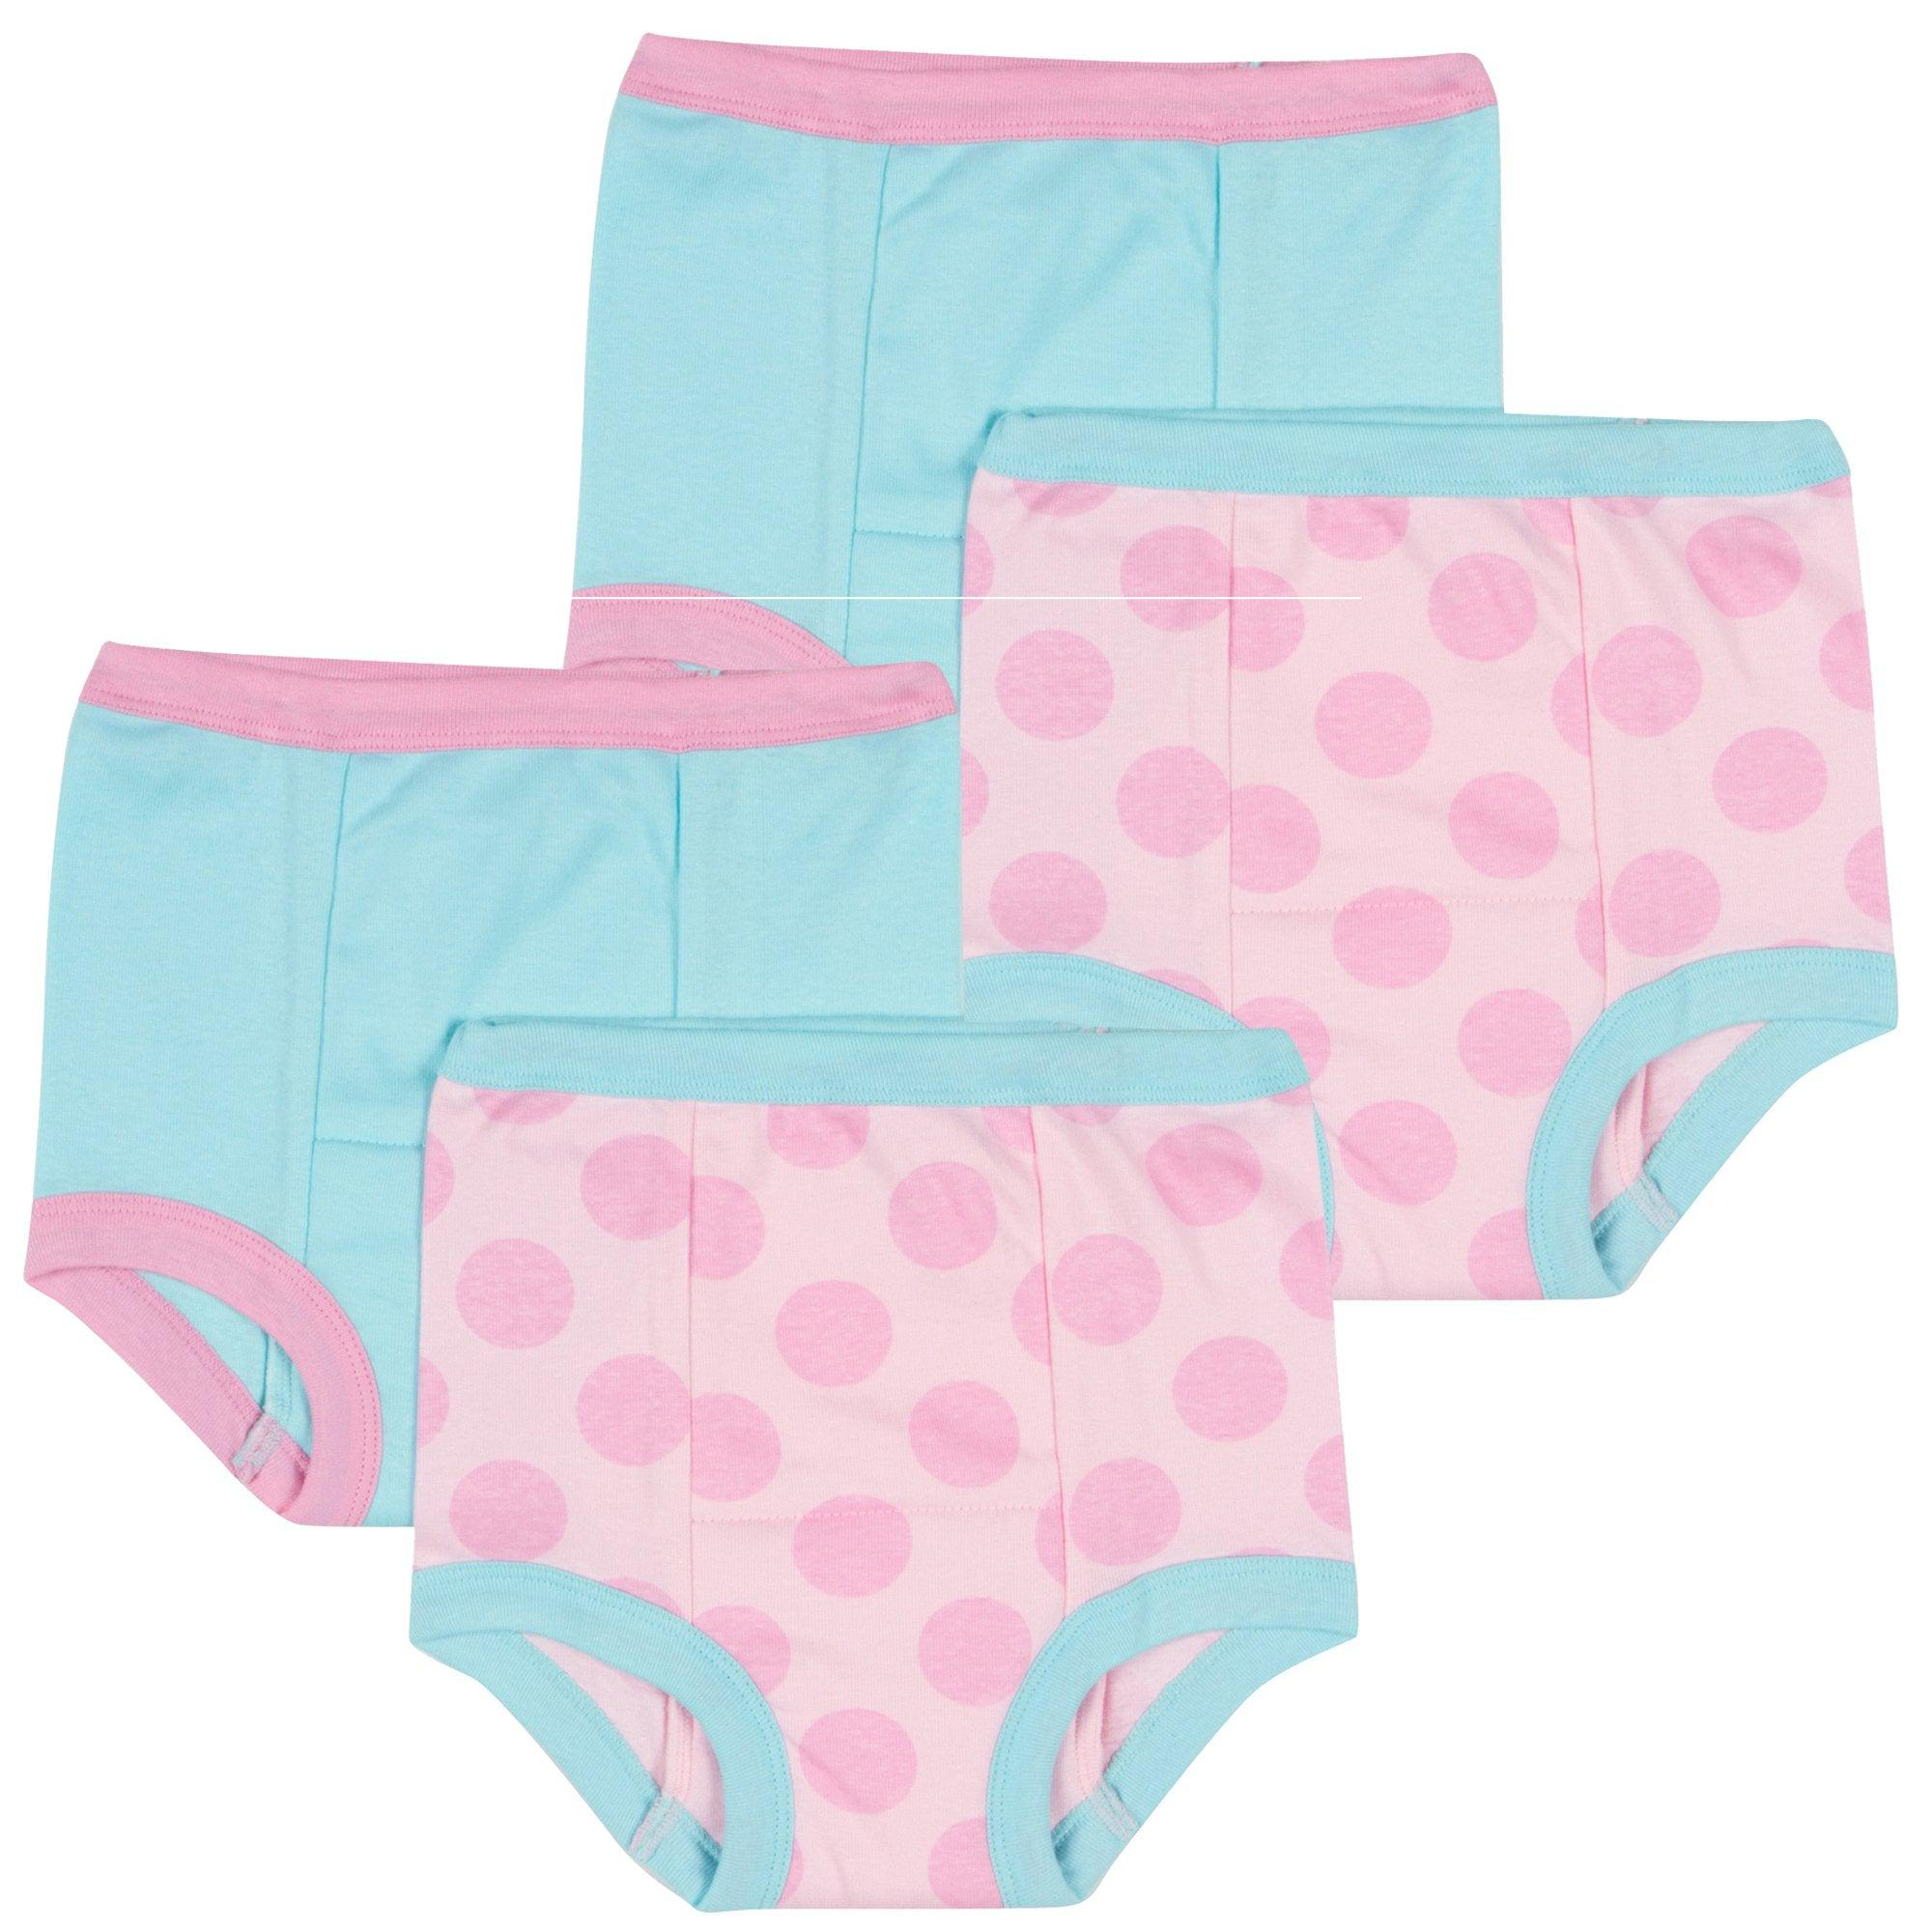 4-Pack Girls Pink Dots Training Pants